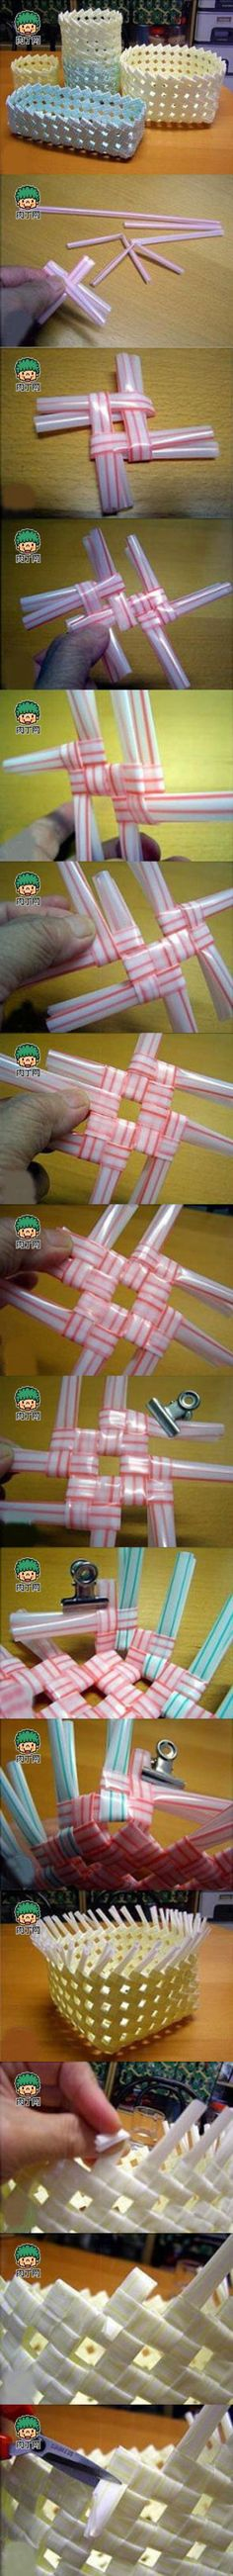 Practice tutorials plastic straws woven straw basket container production